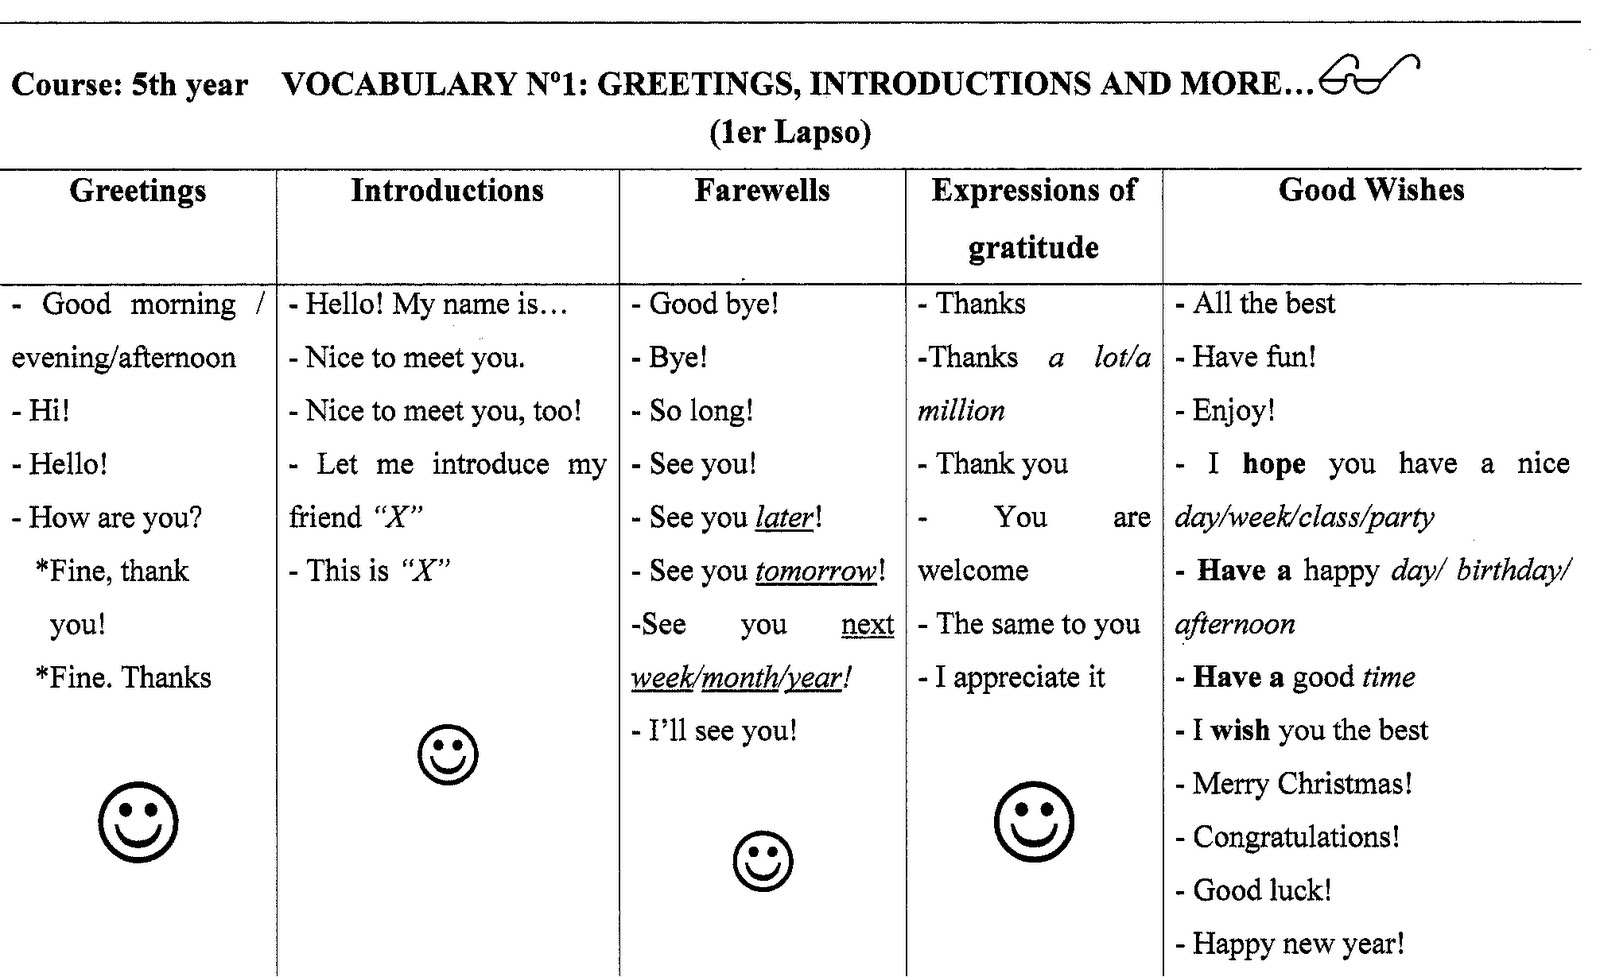 Free worksheets esl greetings and introductions worksheets free 01 greetings and farewells maestro rural english class m4hsunfo